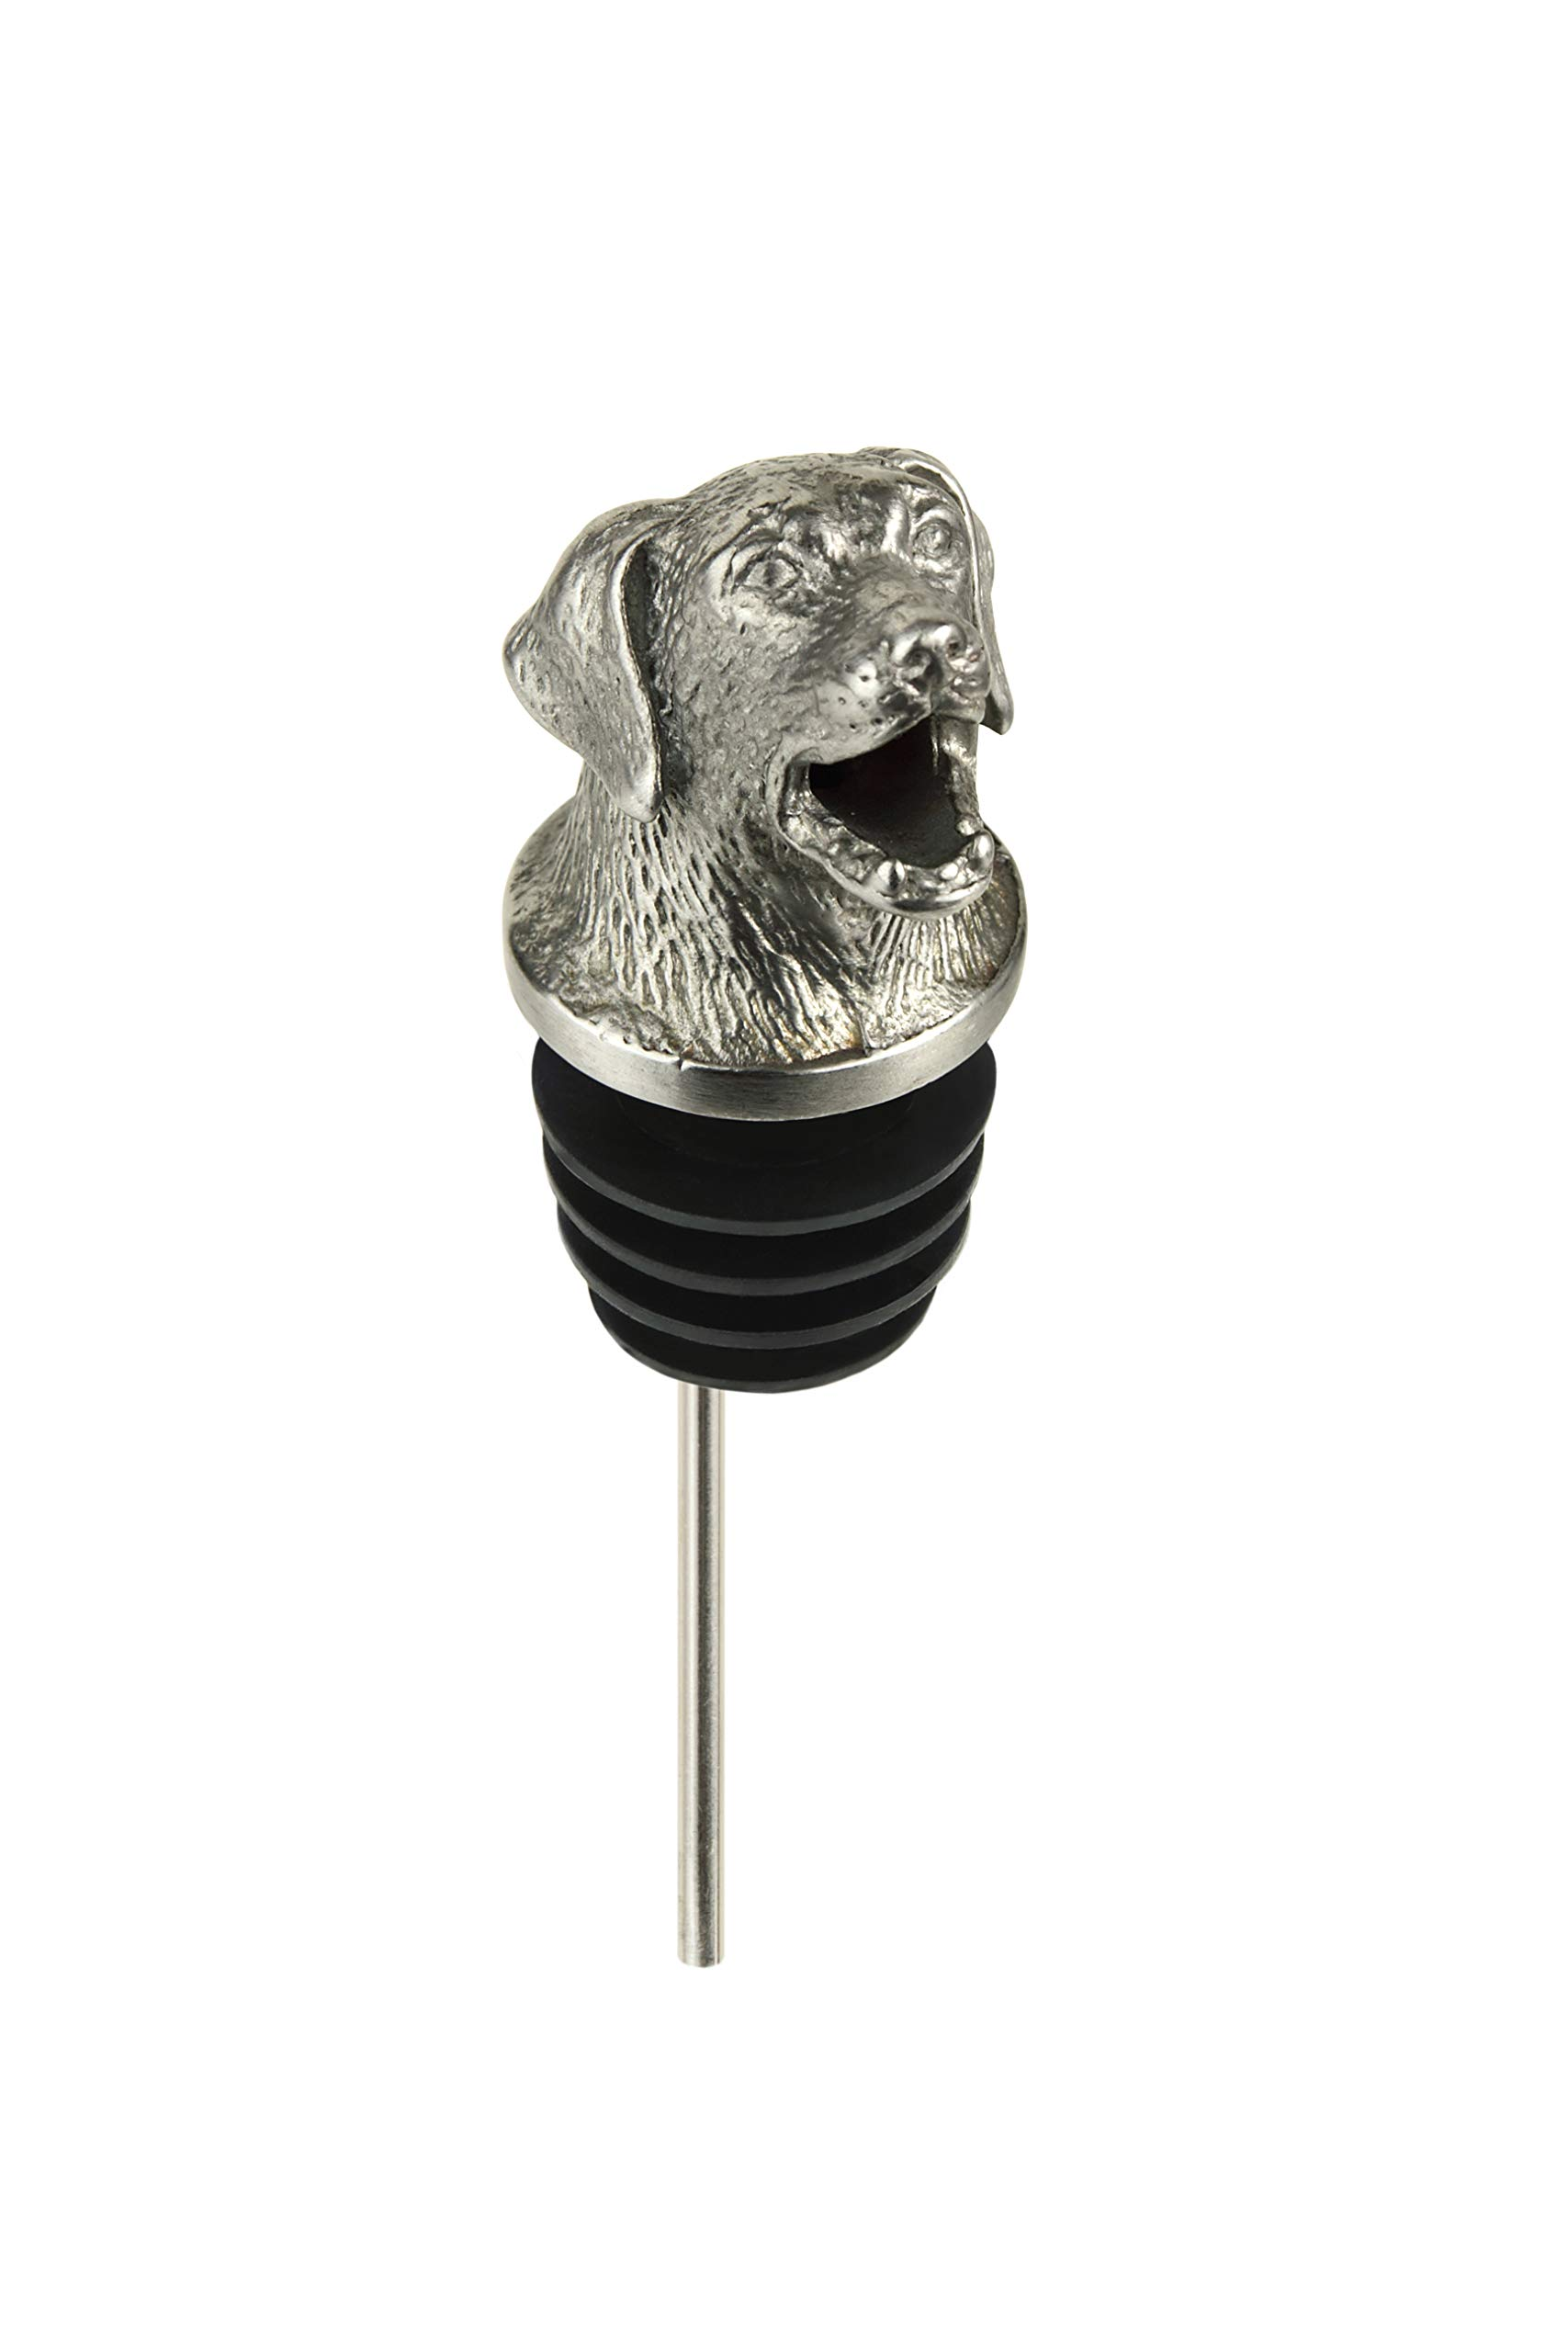 Stainless Steel Wine Aerator (Labrador Dog)